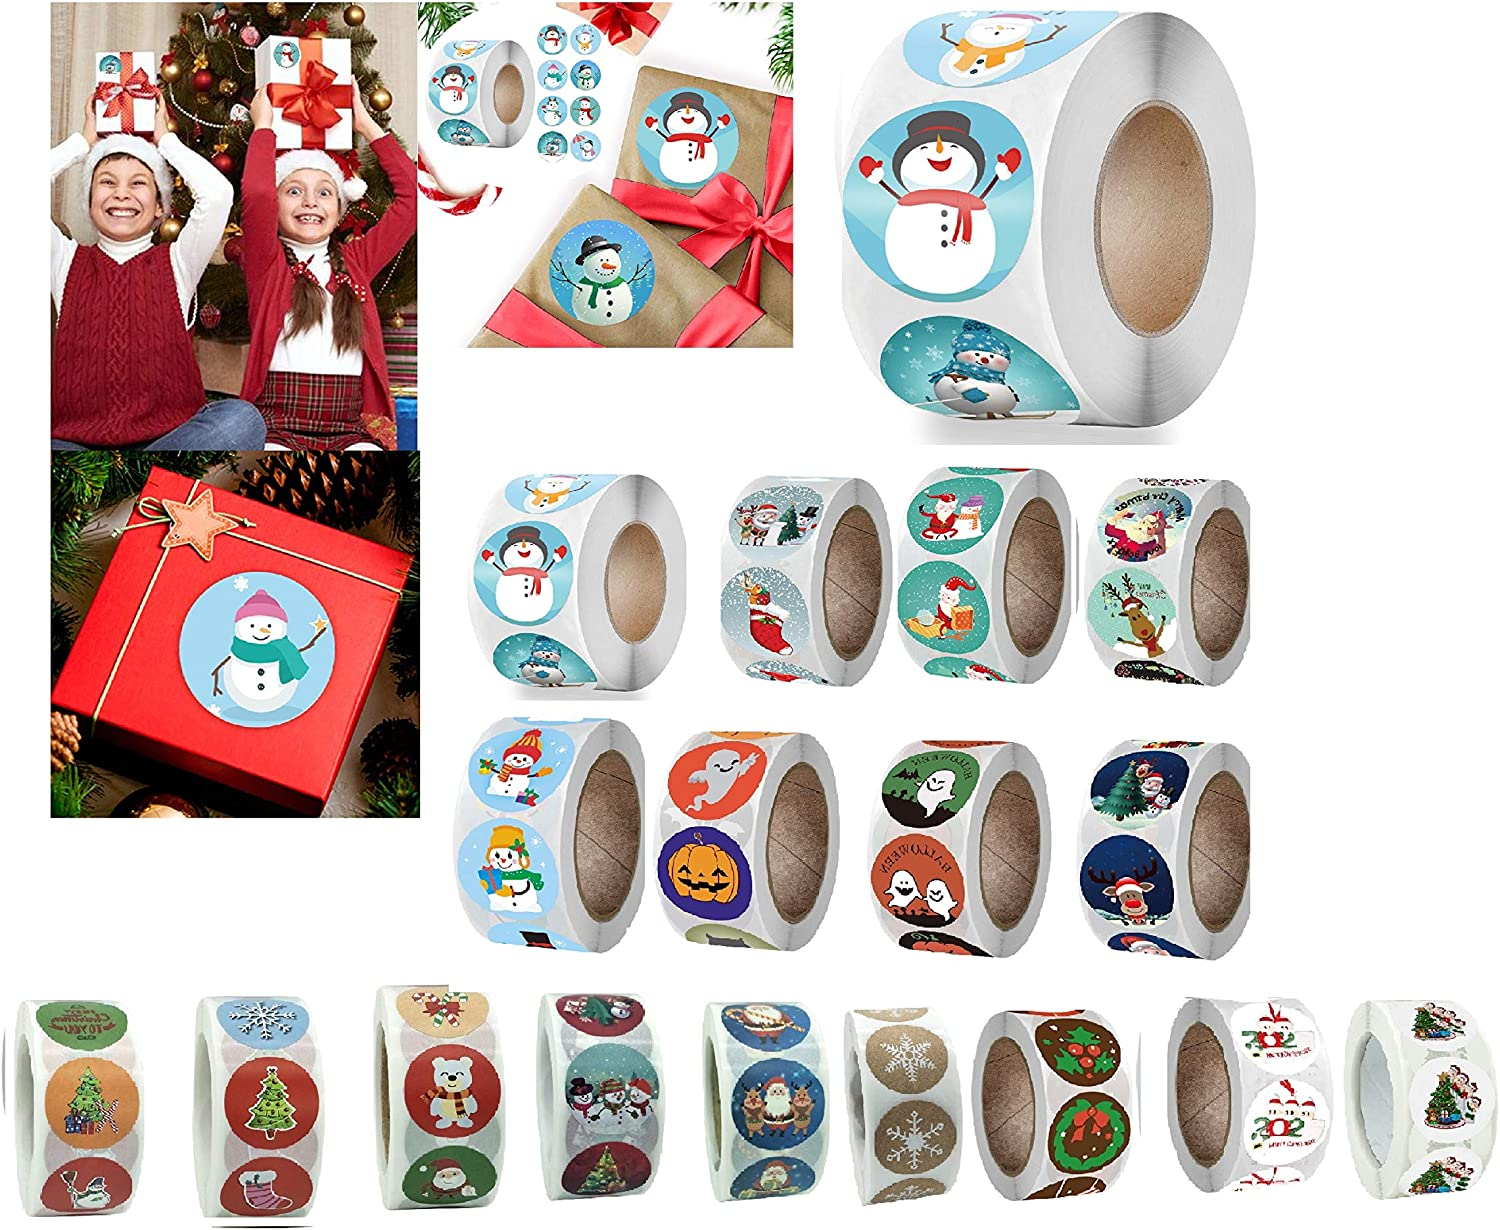 Christmas Stickers,Christmas Roll Pack Sticker, 500 Pieces Round Adhesive Labels for Cards Envelope Gift Boxes Decorative Sealing Stickers,Holiday Wedding Party Favors Supplies (A)